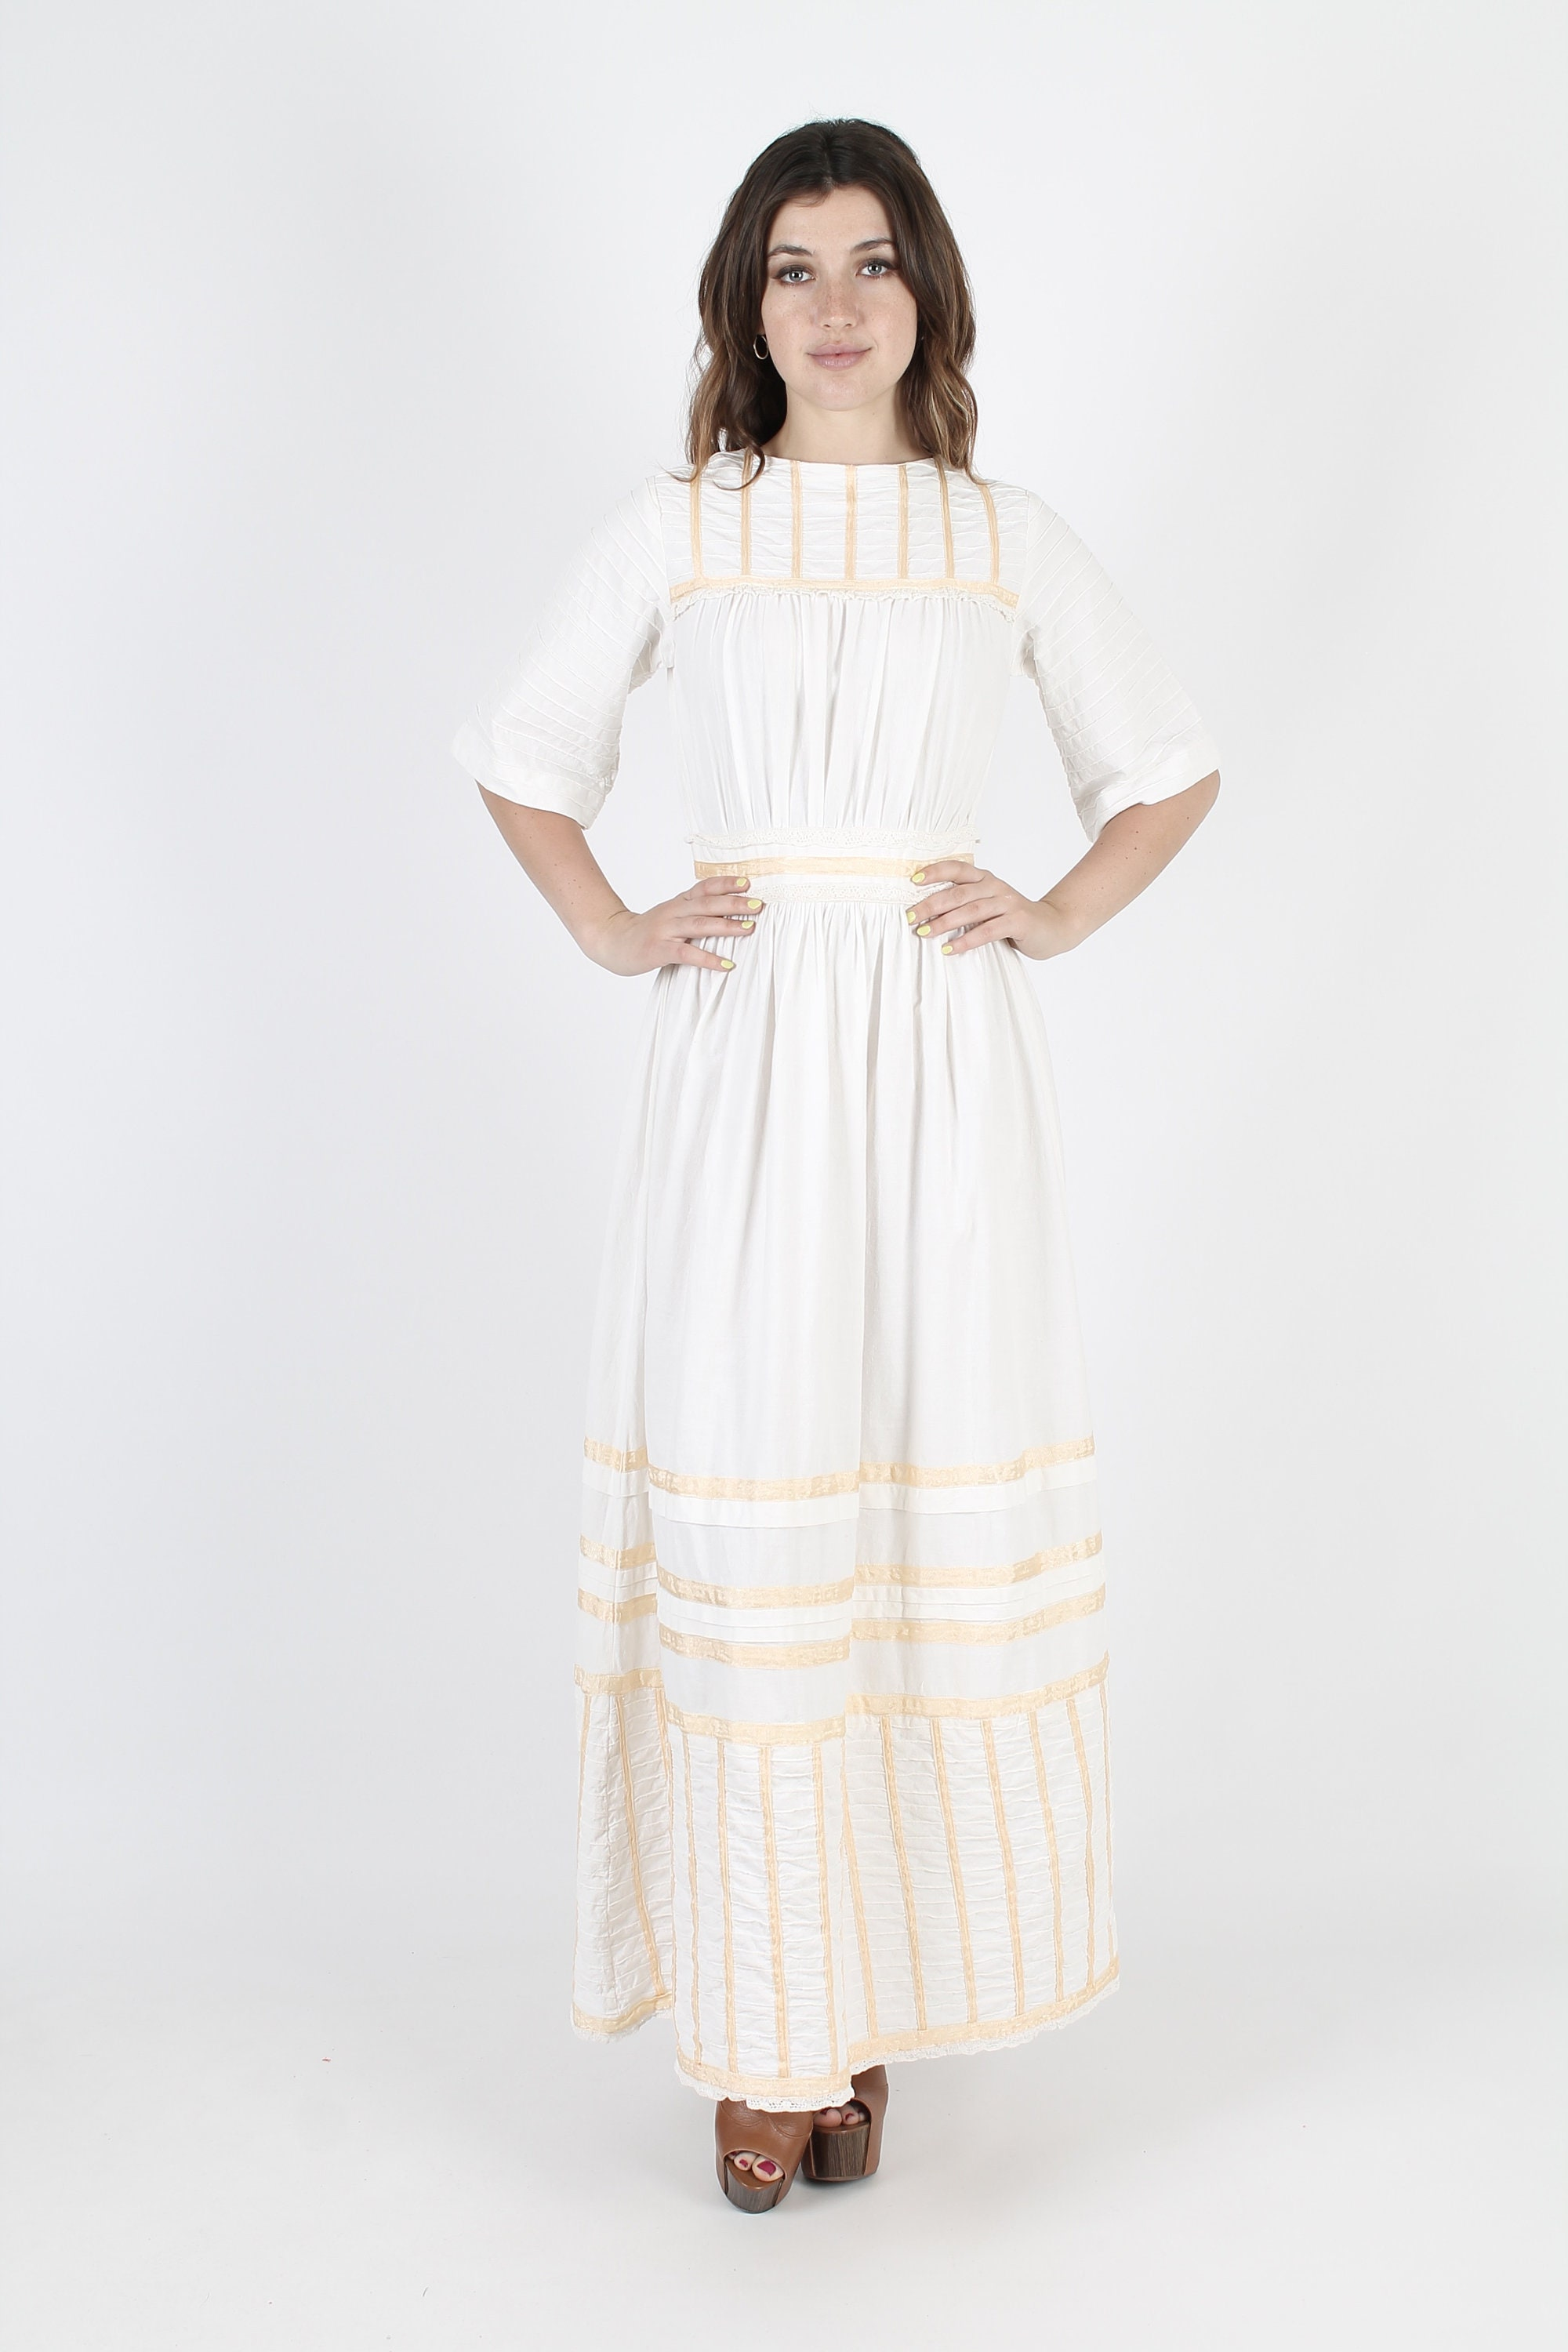 Image 0 1: Mexican Wedding Dresses Ivory At Websimilar.org